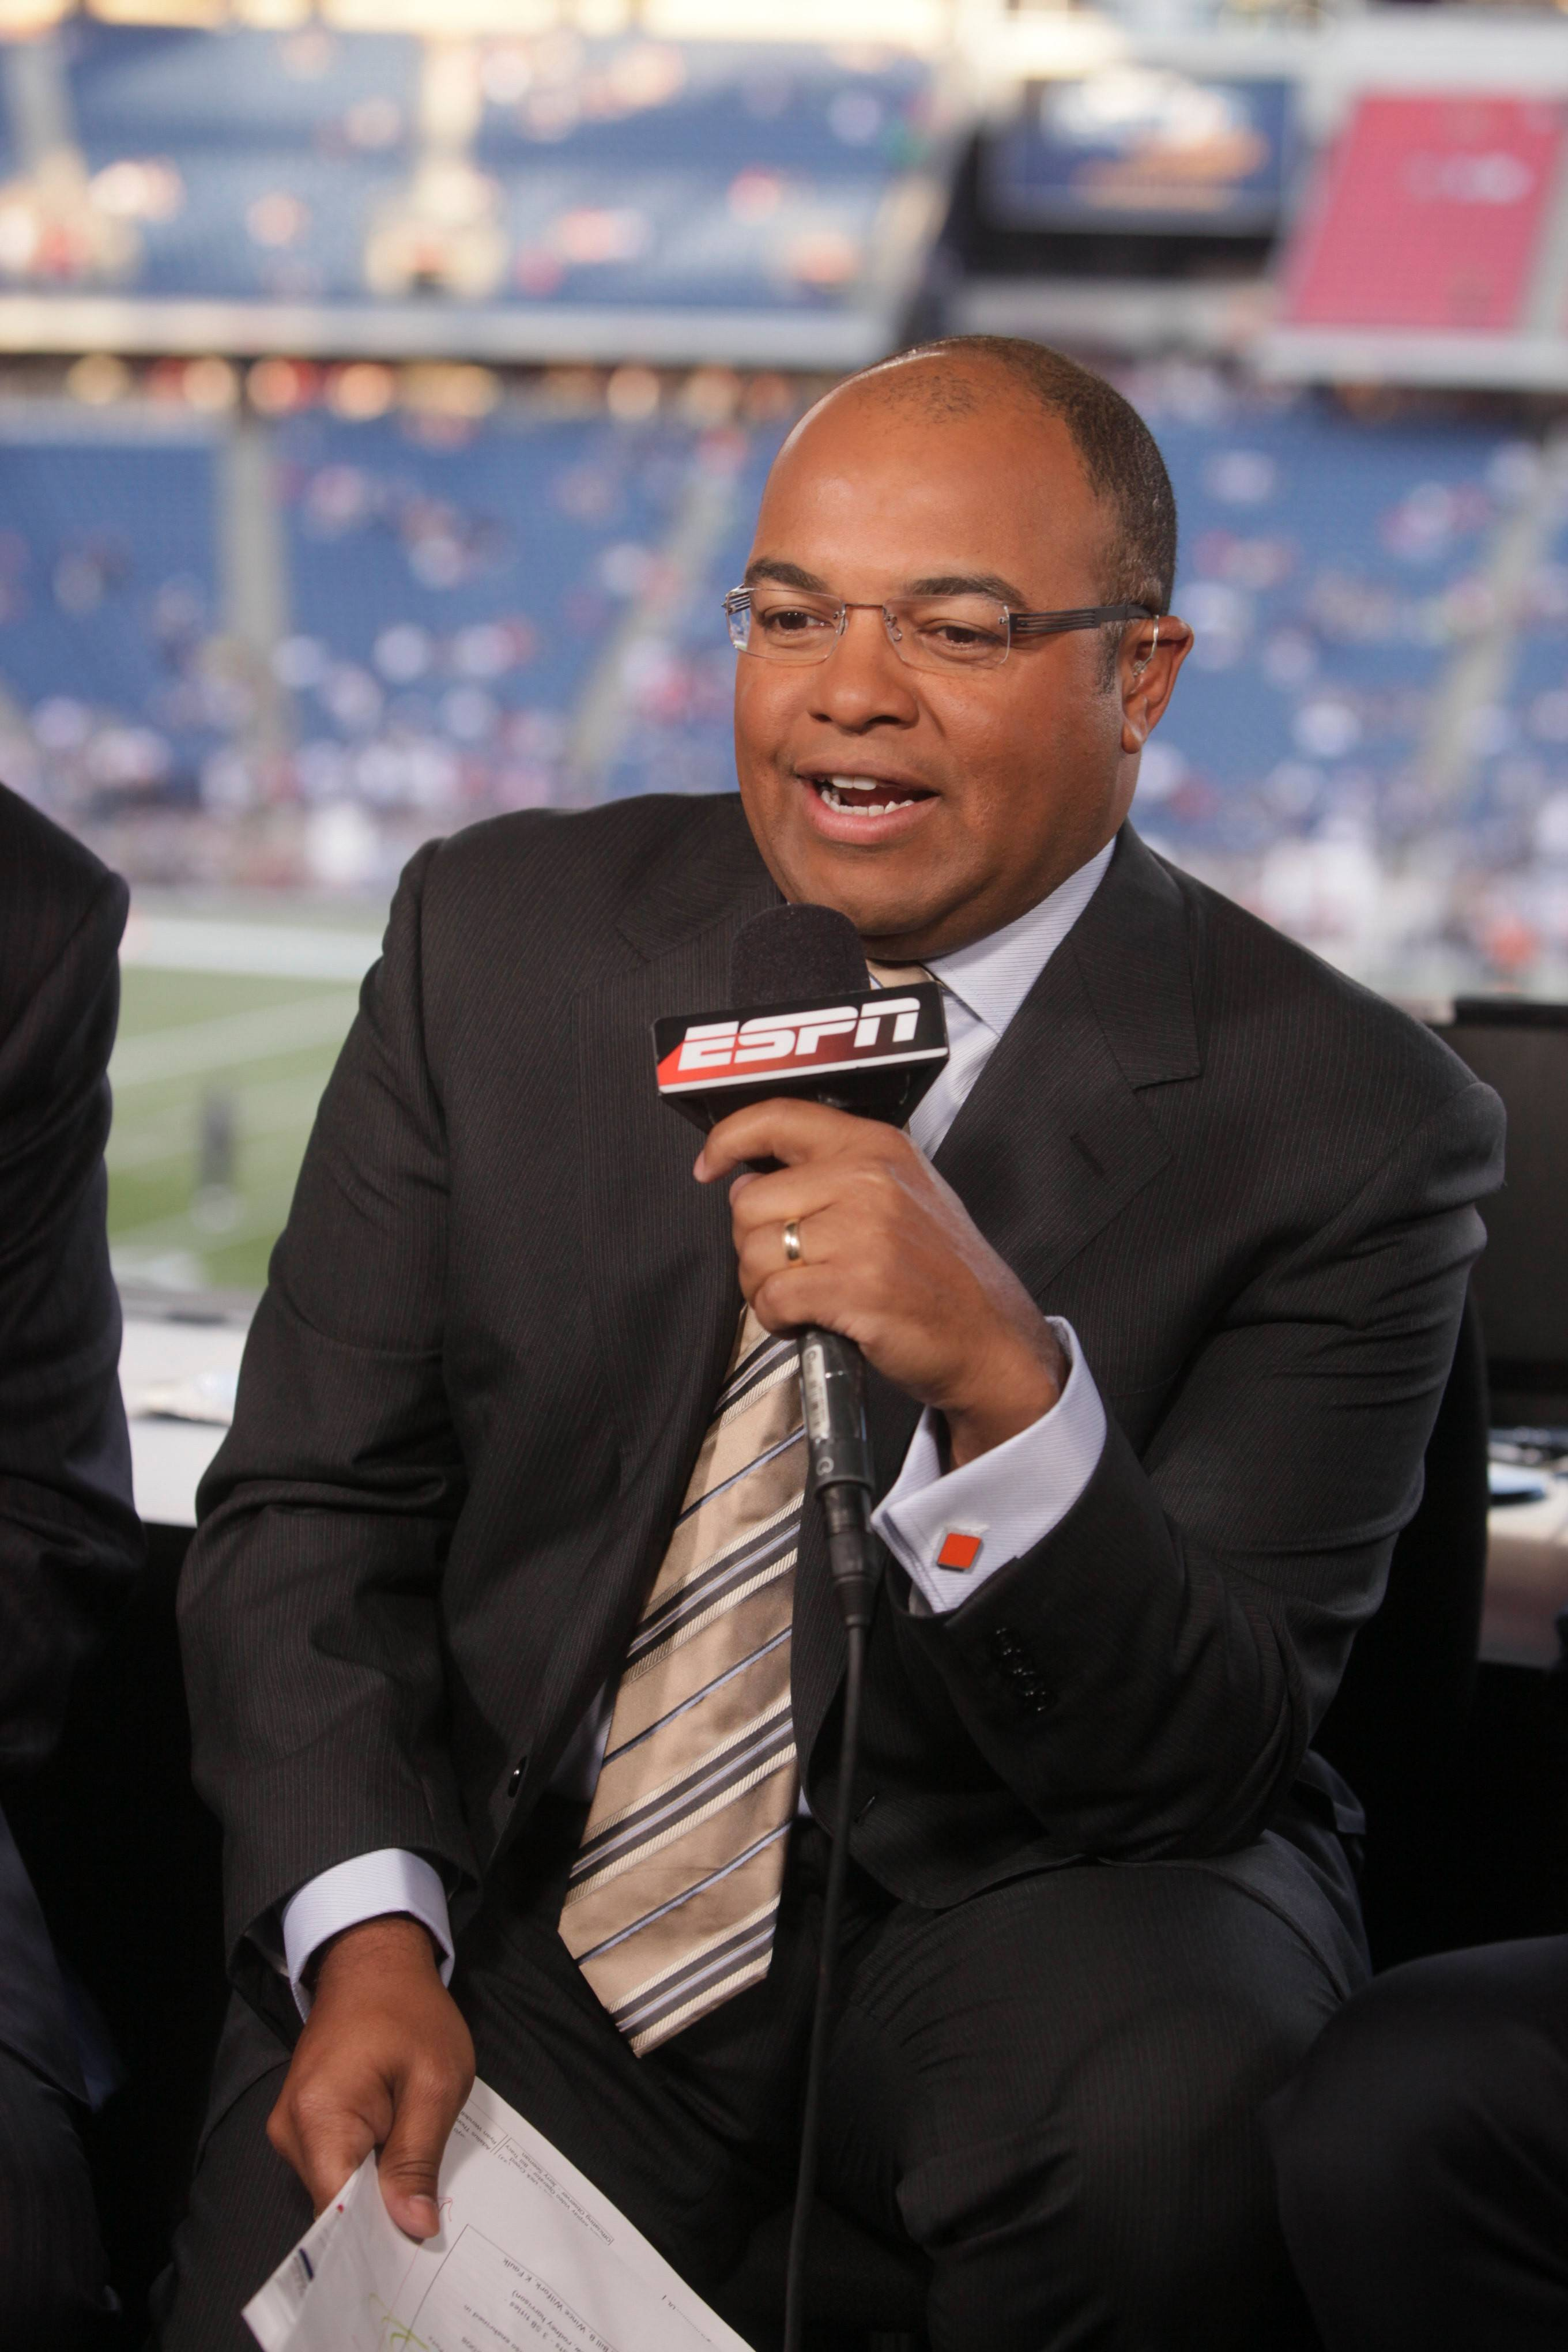 ESPN broadcaster Mike Tirico is well versed in a variety of sports as he anchors coverage for the NFL, World Cup soccer, and golf.